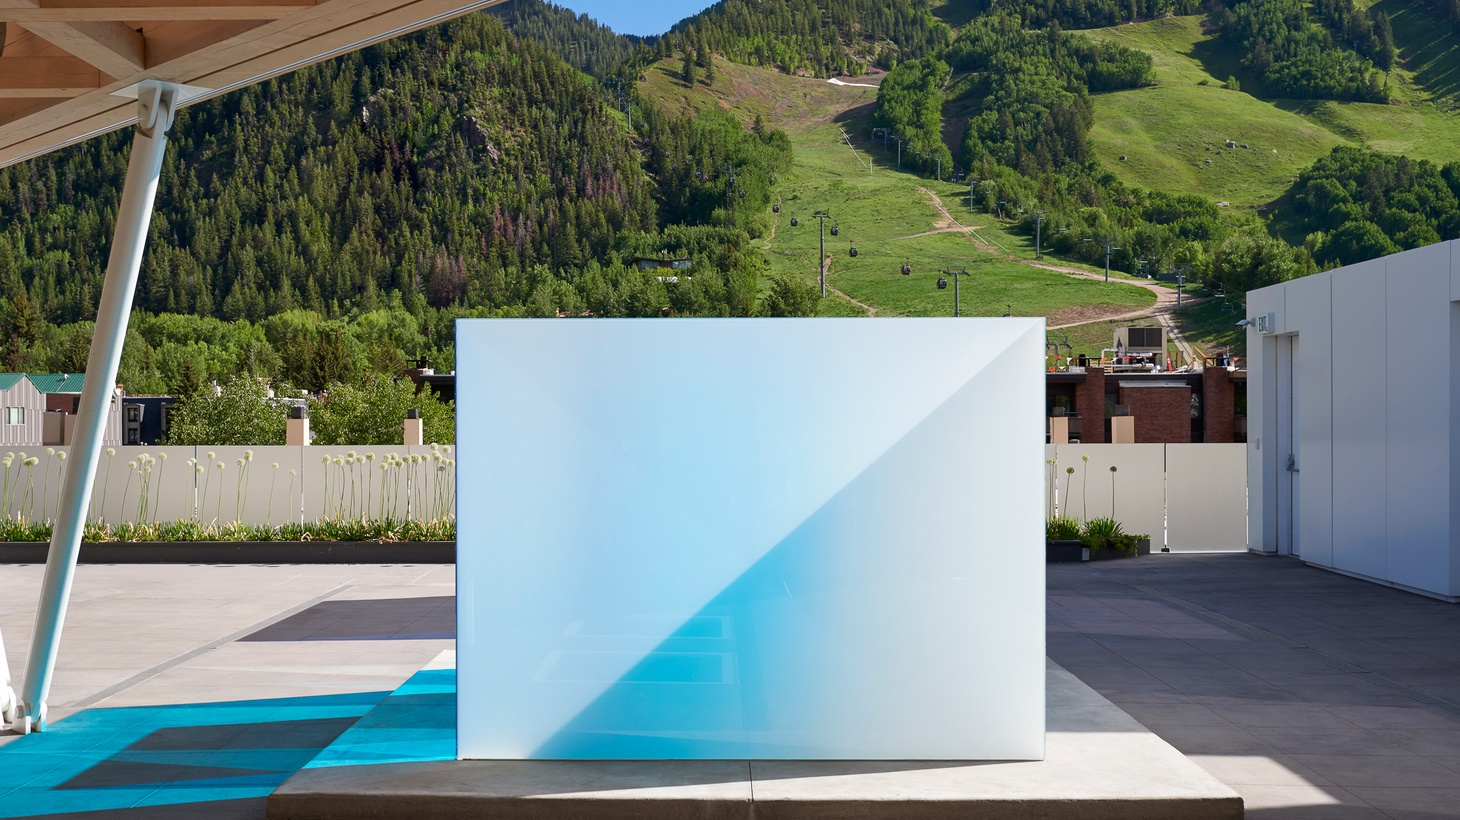 Hunter Drohojowska-Philp talks about the light and space artist's work in downtown L.A. and his Aspen Blues